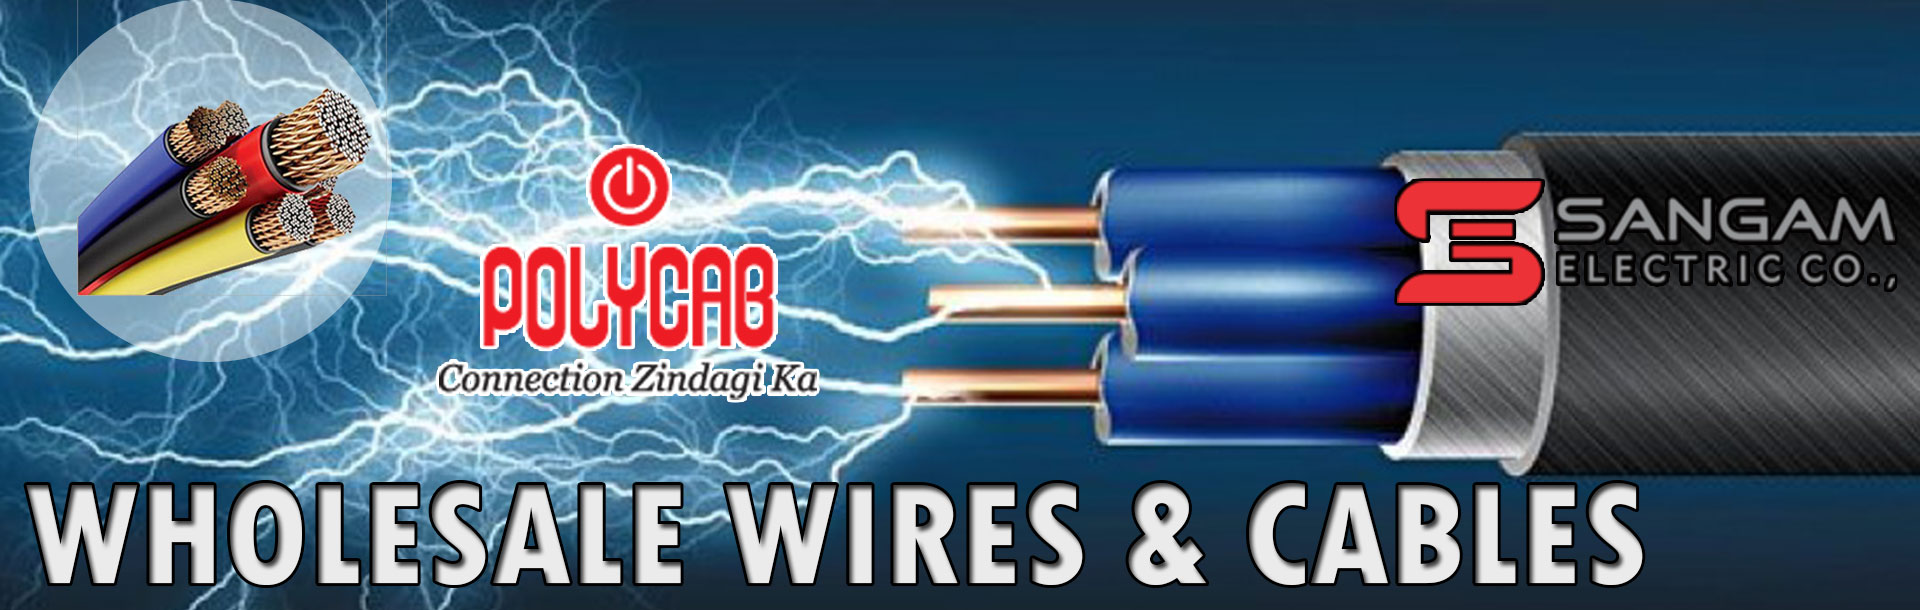 Wholesale Distributors In Chennai Sangam Electric Polycab Wire And Cable Dealers In Chennai